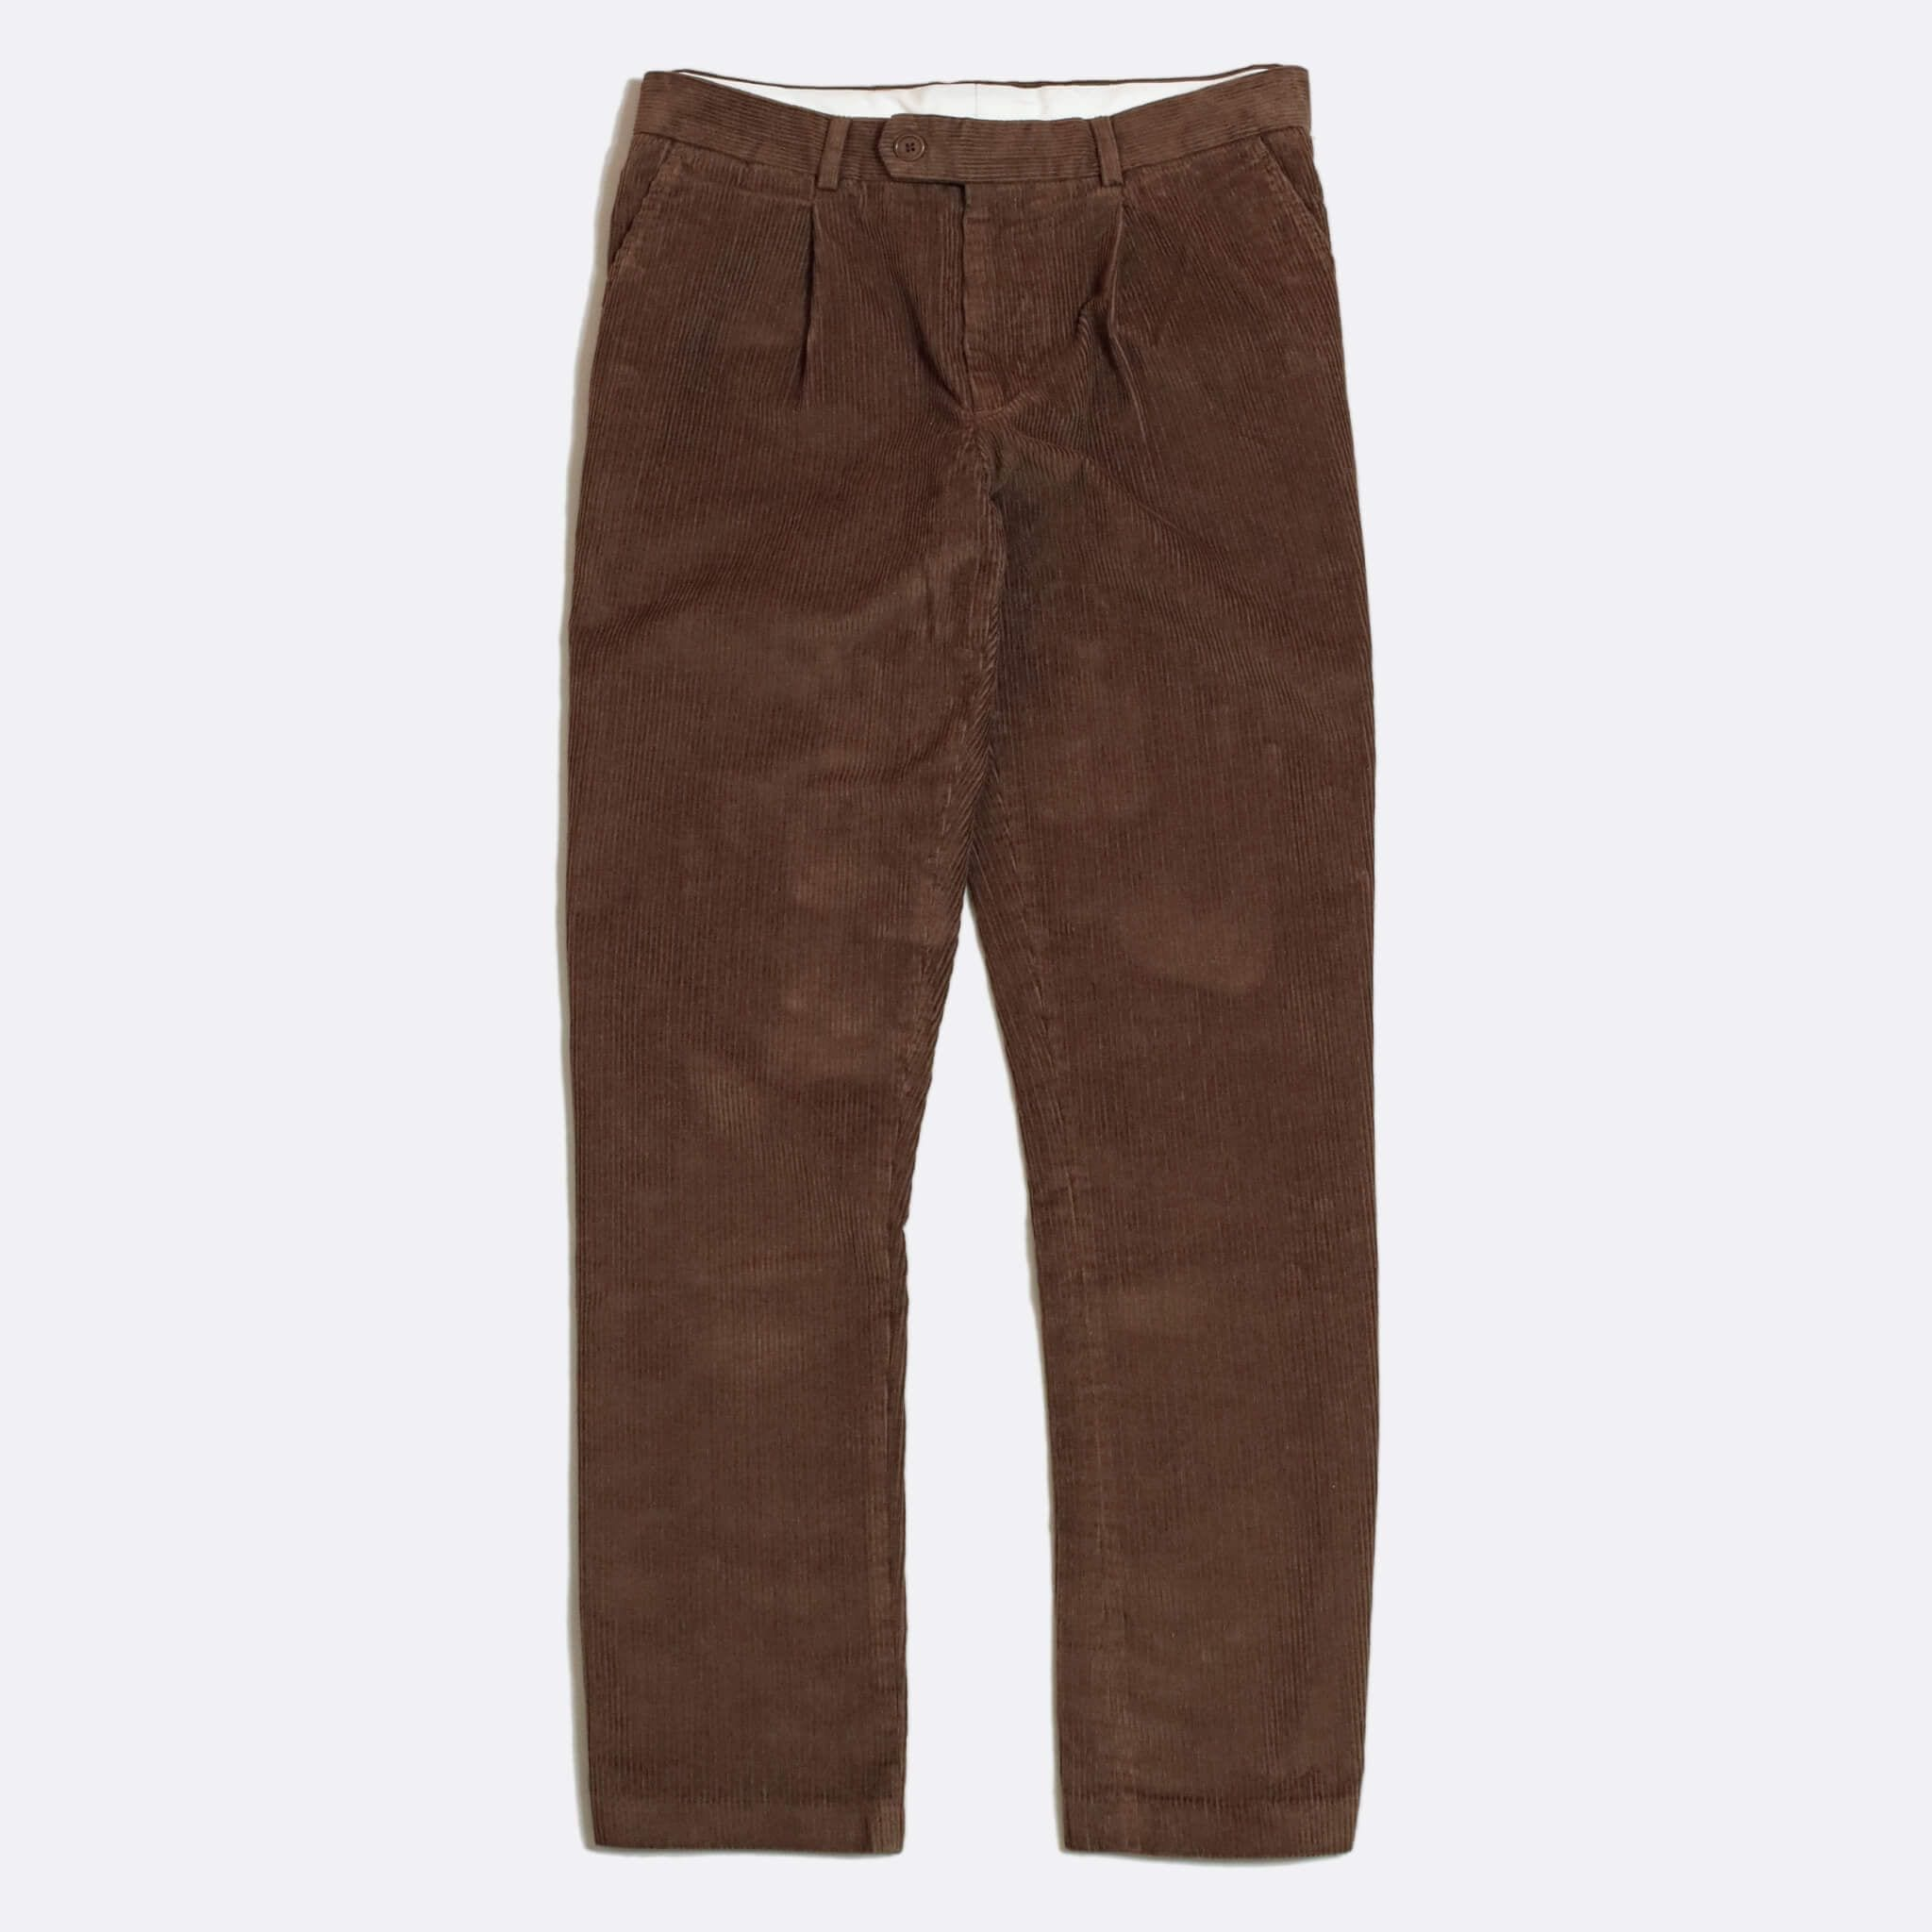 Far Afield Pleat Trousers a Dark Brown Organic Cotton Corduroy Fabric Classic Tailored Casual